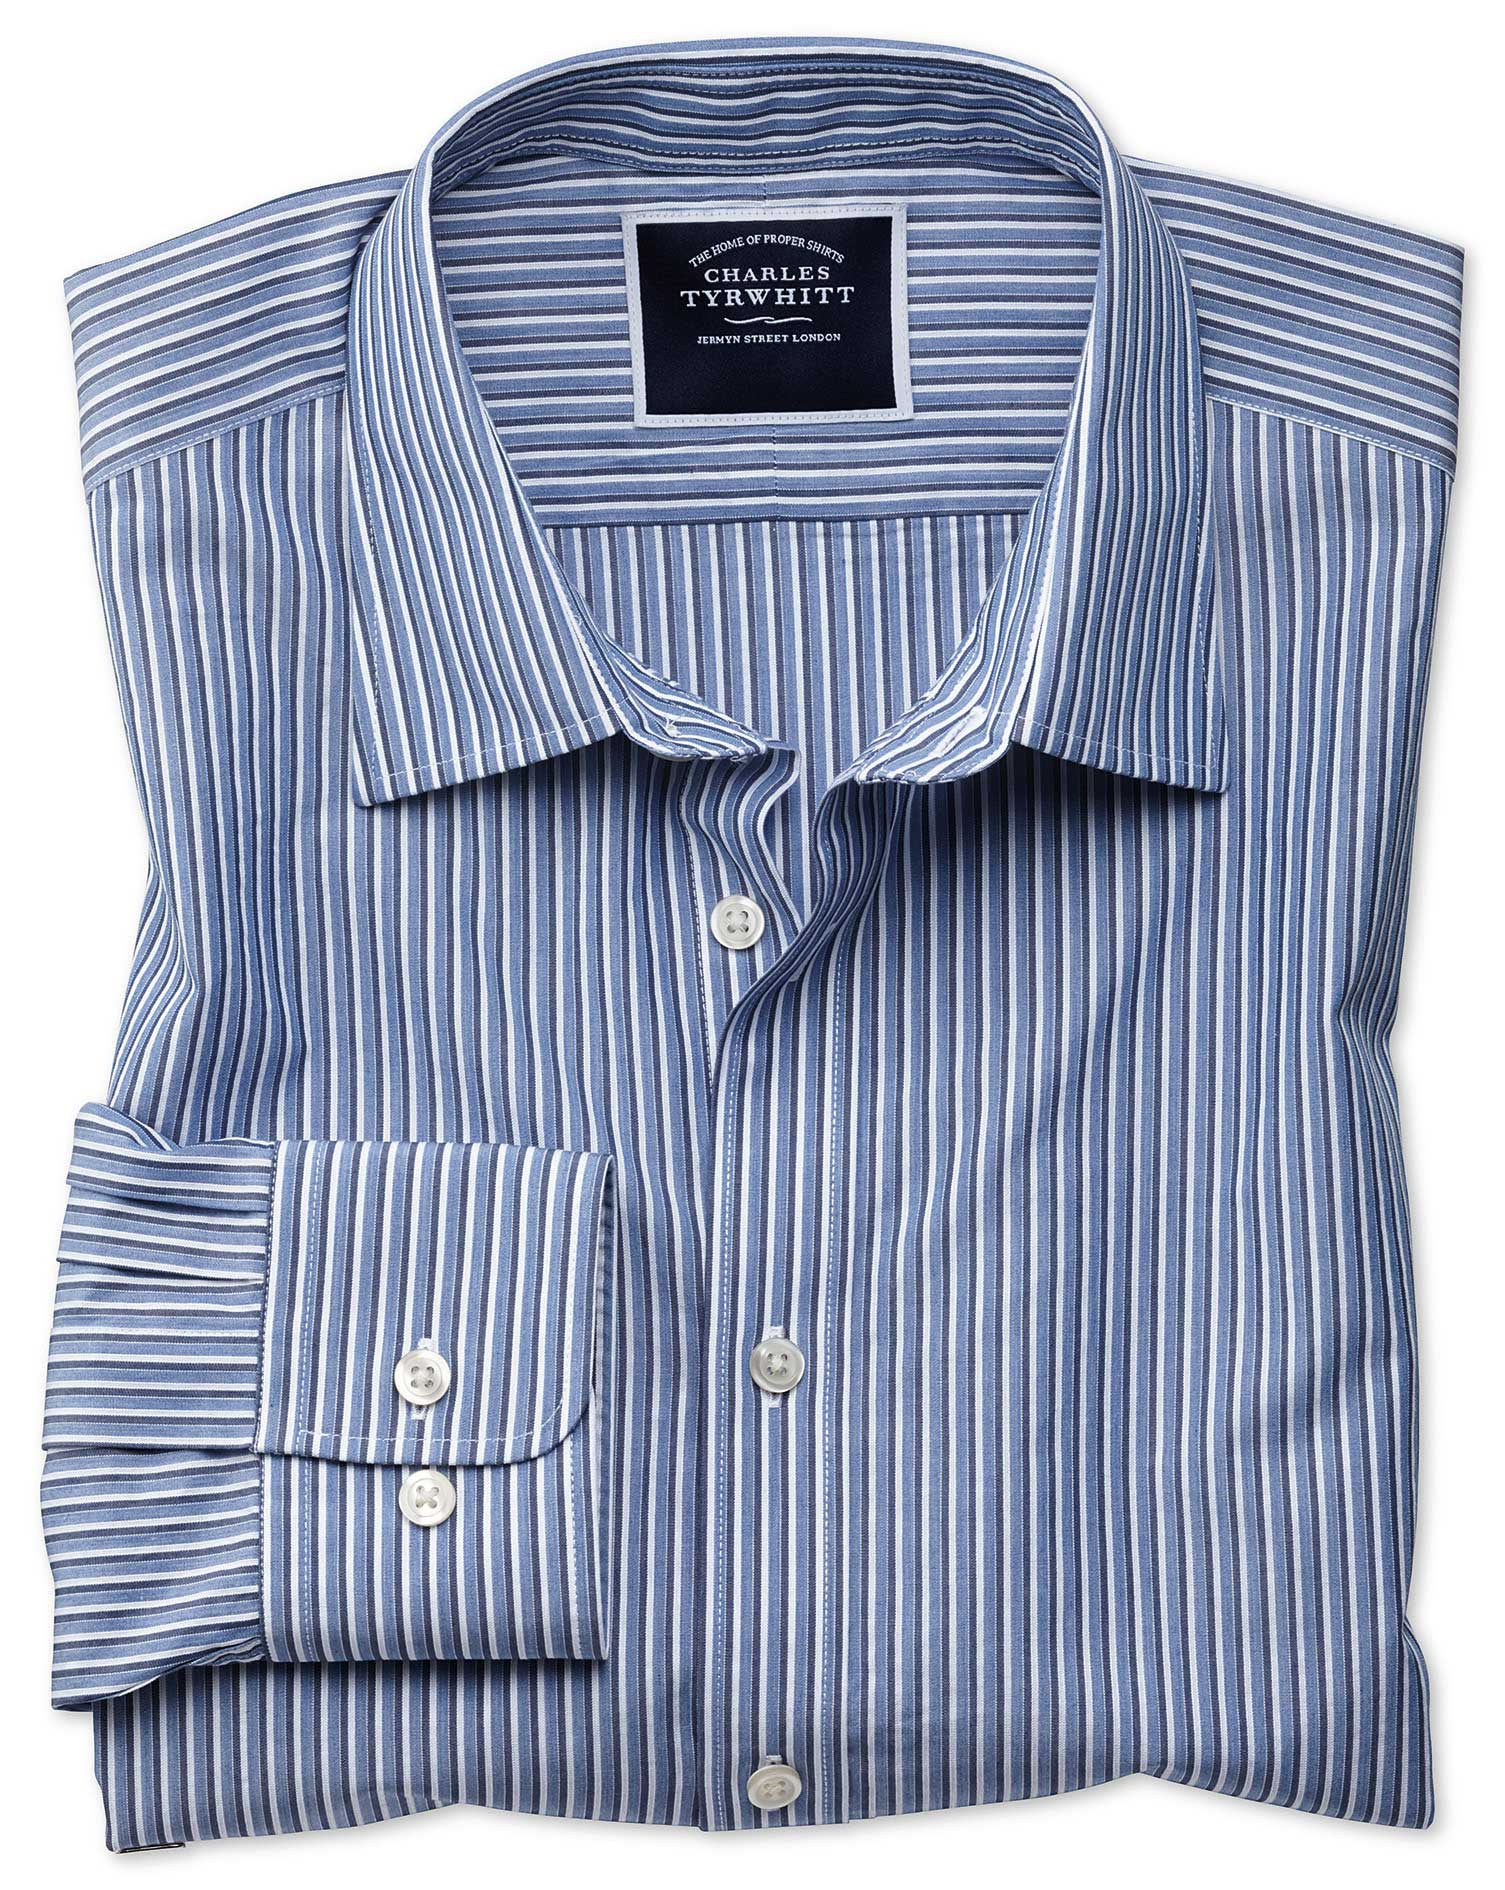 classic fit blue stripe soft washed cotton casual shirt single cuff size xxxl by charles tyrwhitt